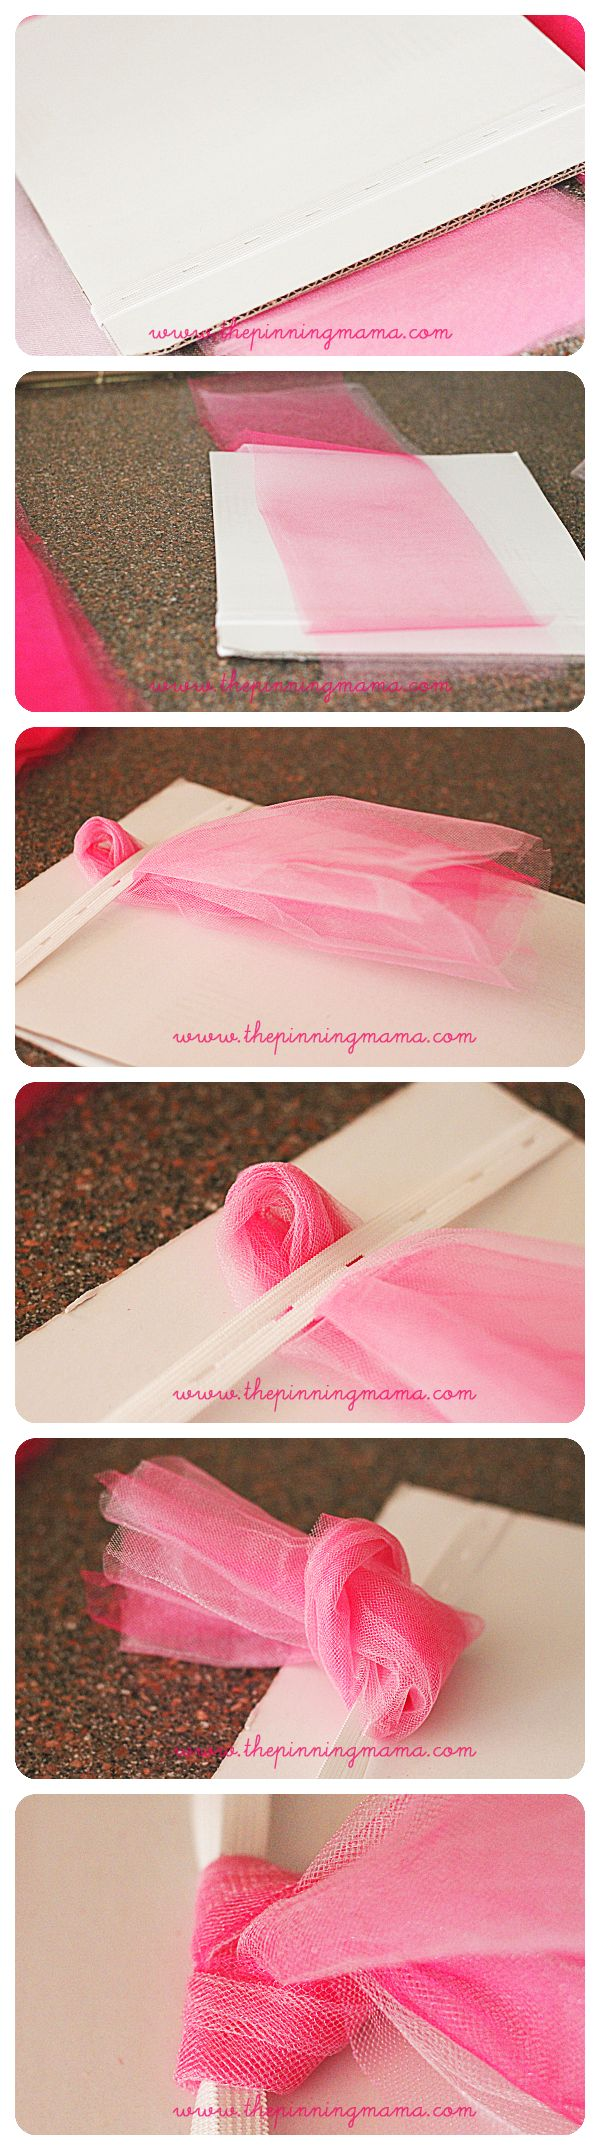 Now all that is left is to fluff your tutu!  Simply go through each layer and…